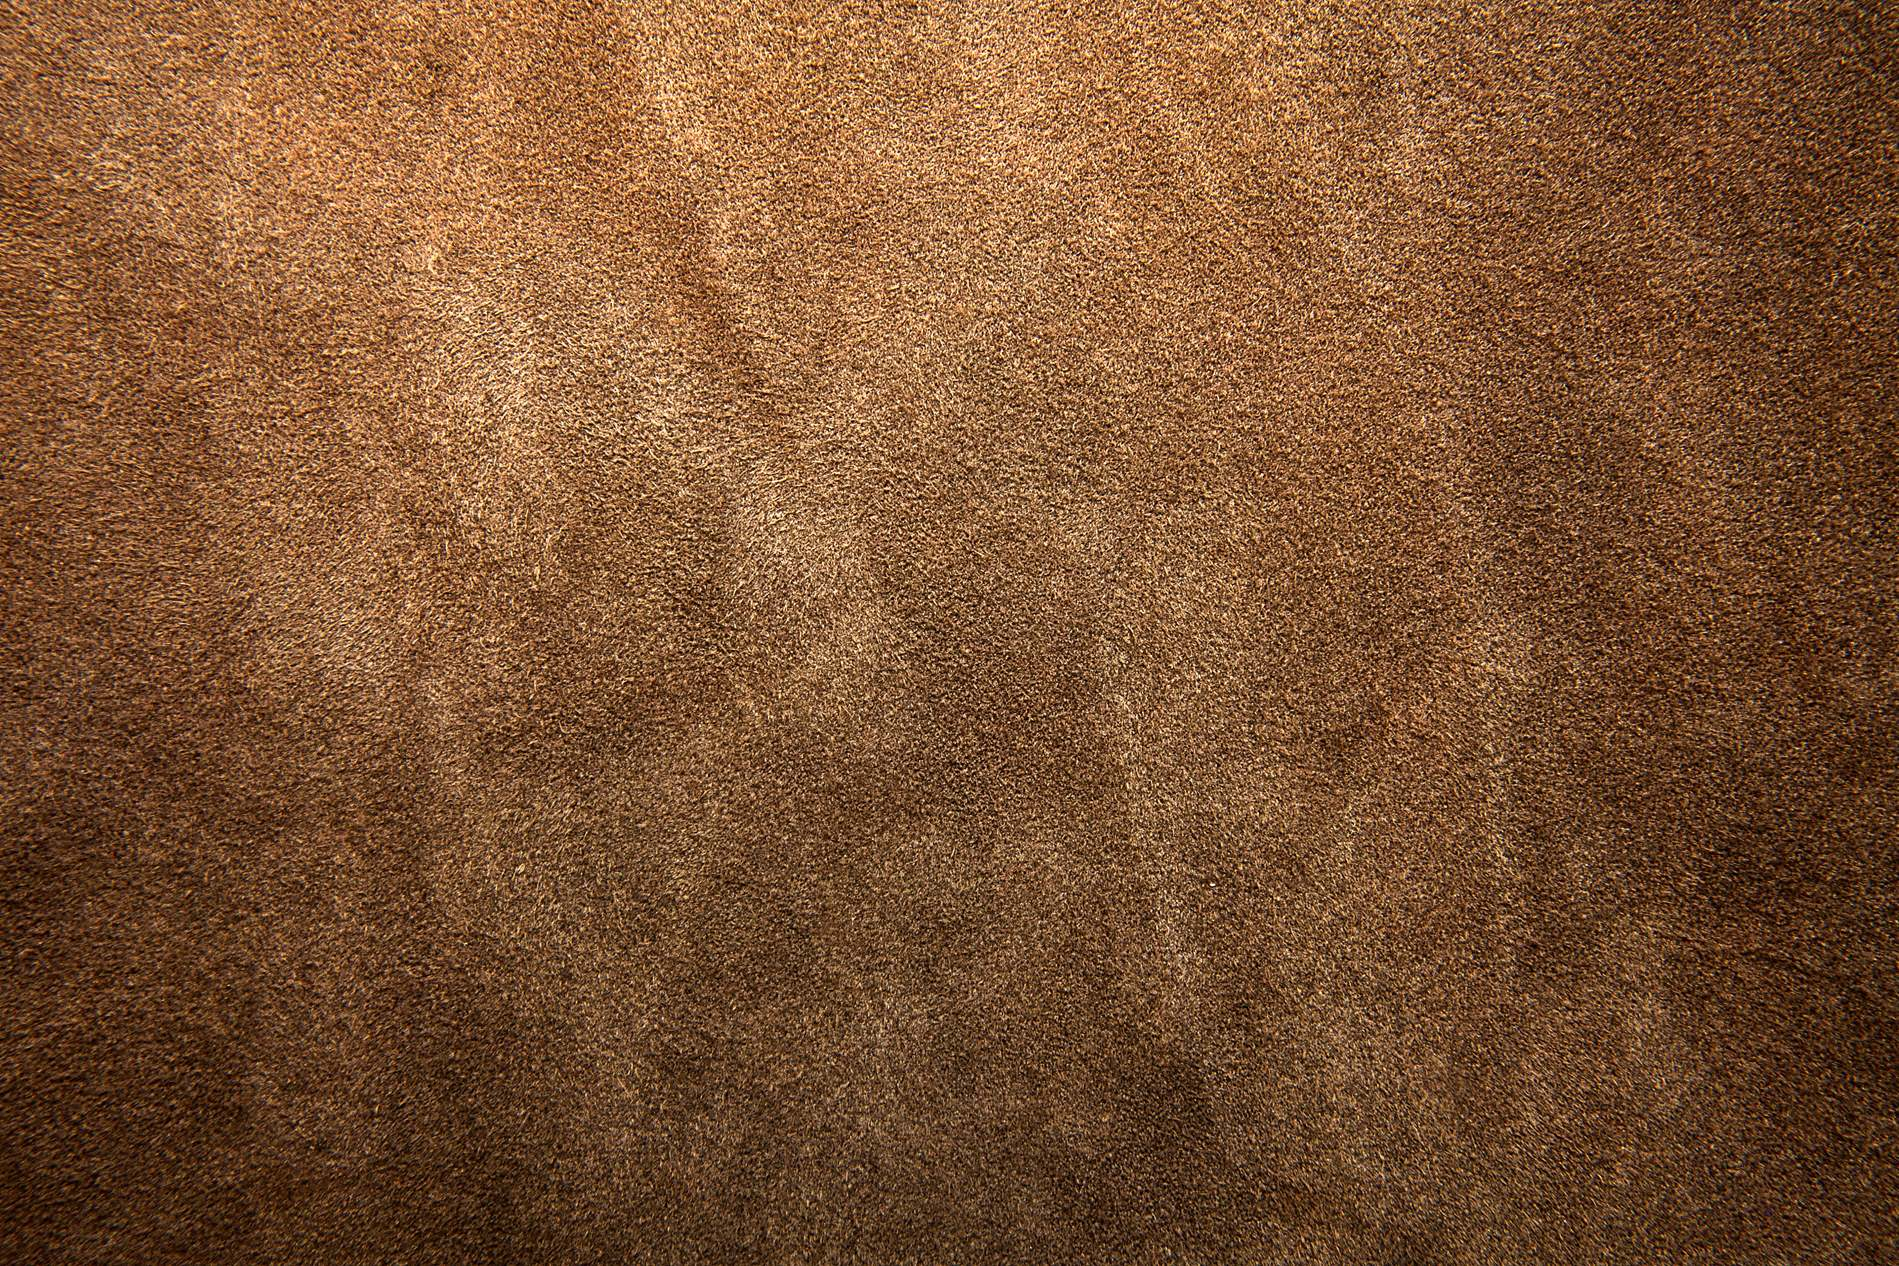 brown soft leather texture background photohdx Rustic Wood Seamless Texture Seamless Wood Texture Table